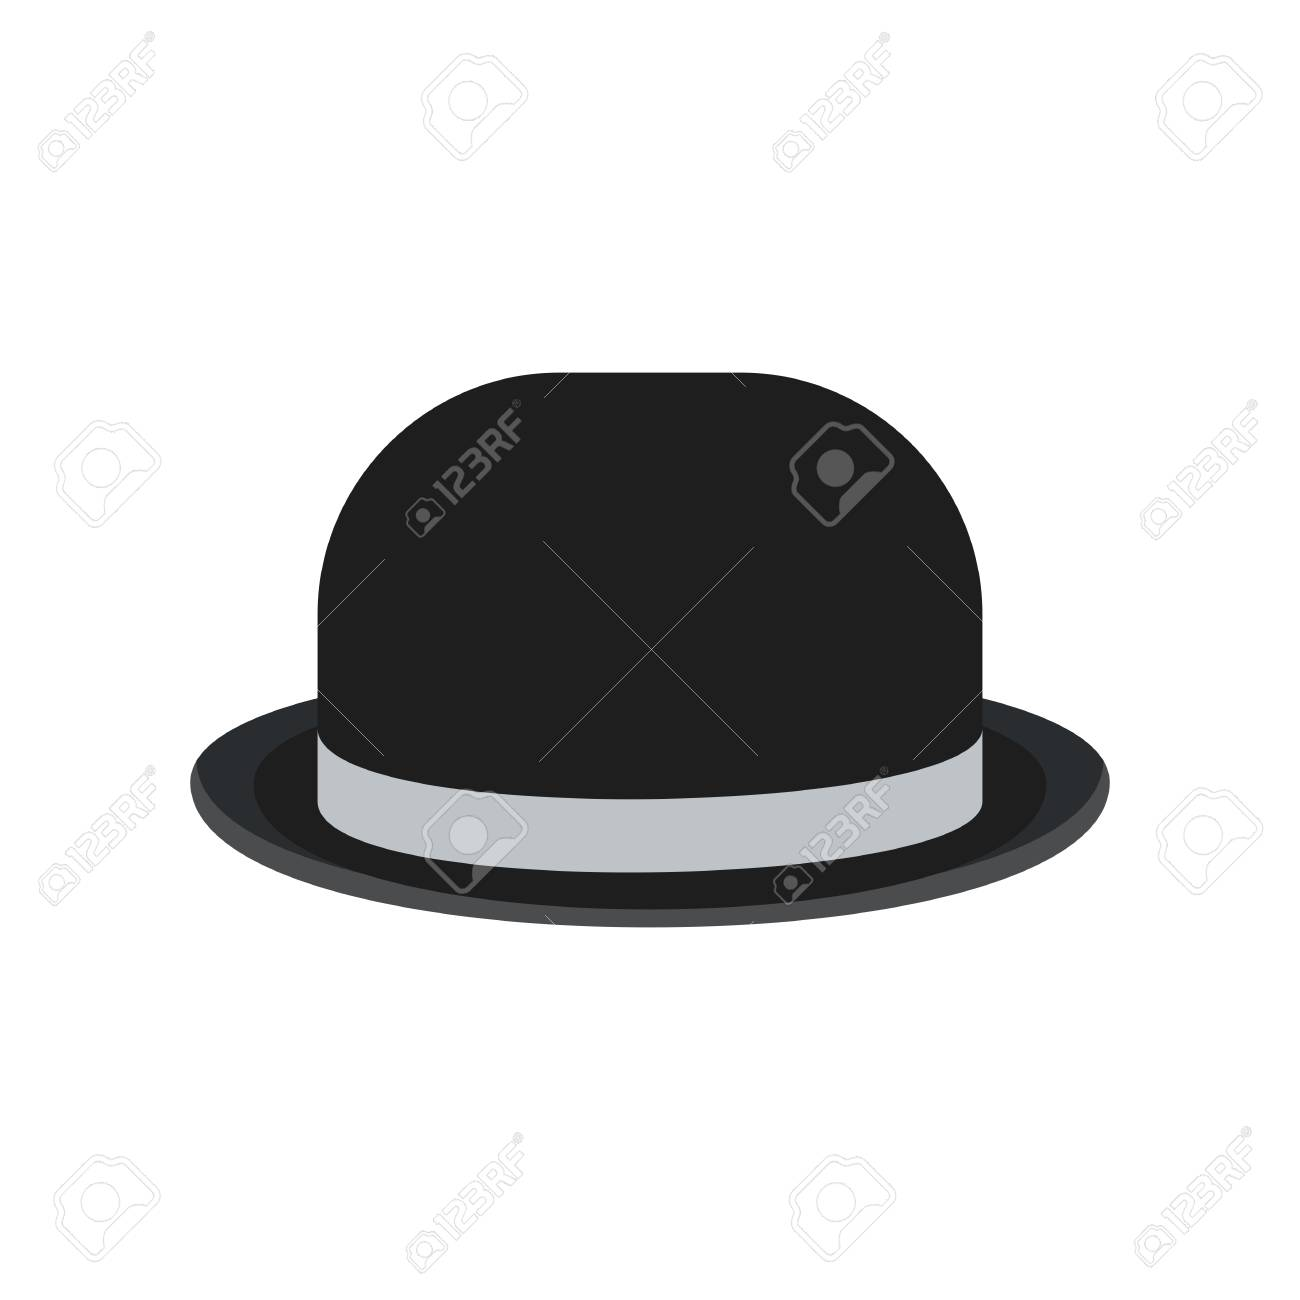 034b858fe83 Black retro vintage man bowler hat for gentlemen. Flat vector cartoon  illustration. Objects isolated